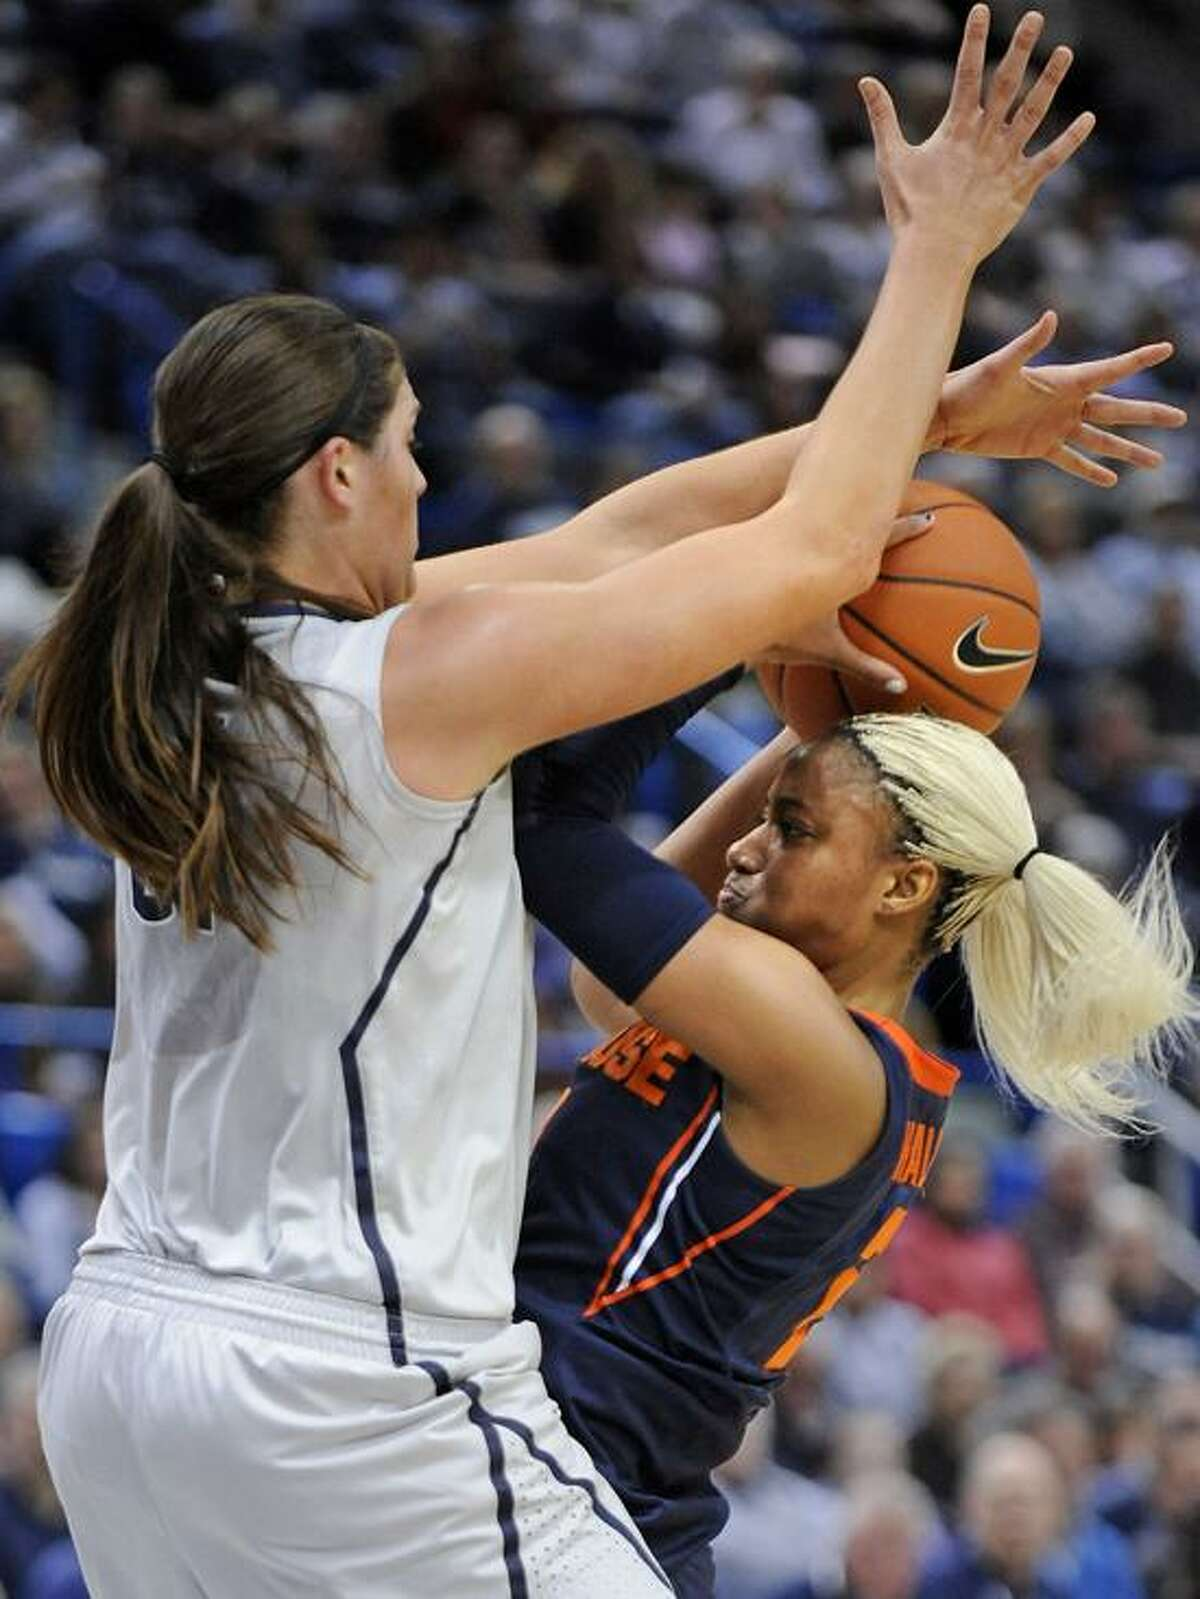 Connecticut's Stefanie Dolson, left, covers Syracuse's Elashier Hall during the second half of an NCAA college basketball game in Hartford, Conn., Saturday, Jan. 19, 2013. Dolson scored a game-high 25 points in Connecticut's 87-62 victory. (AP Photo/Fred Beckham)